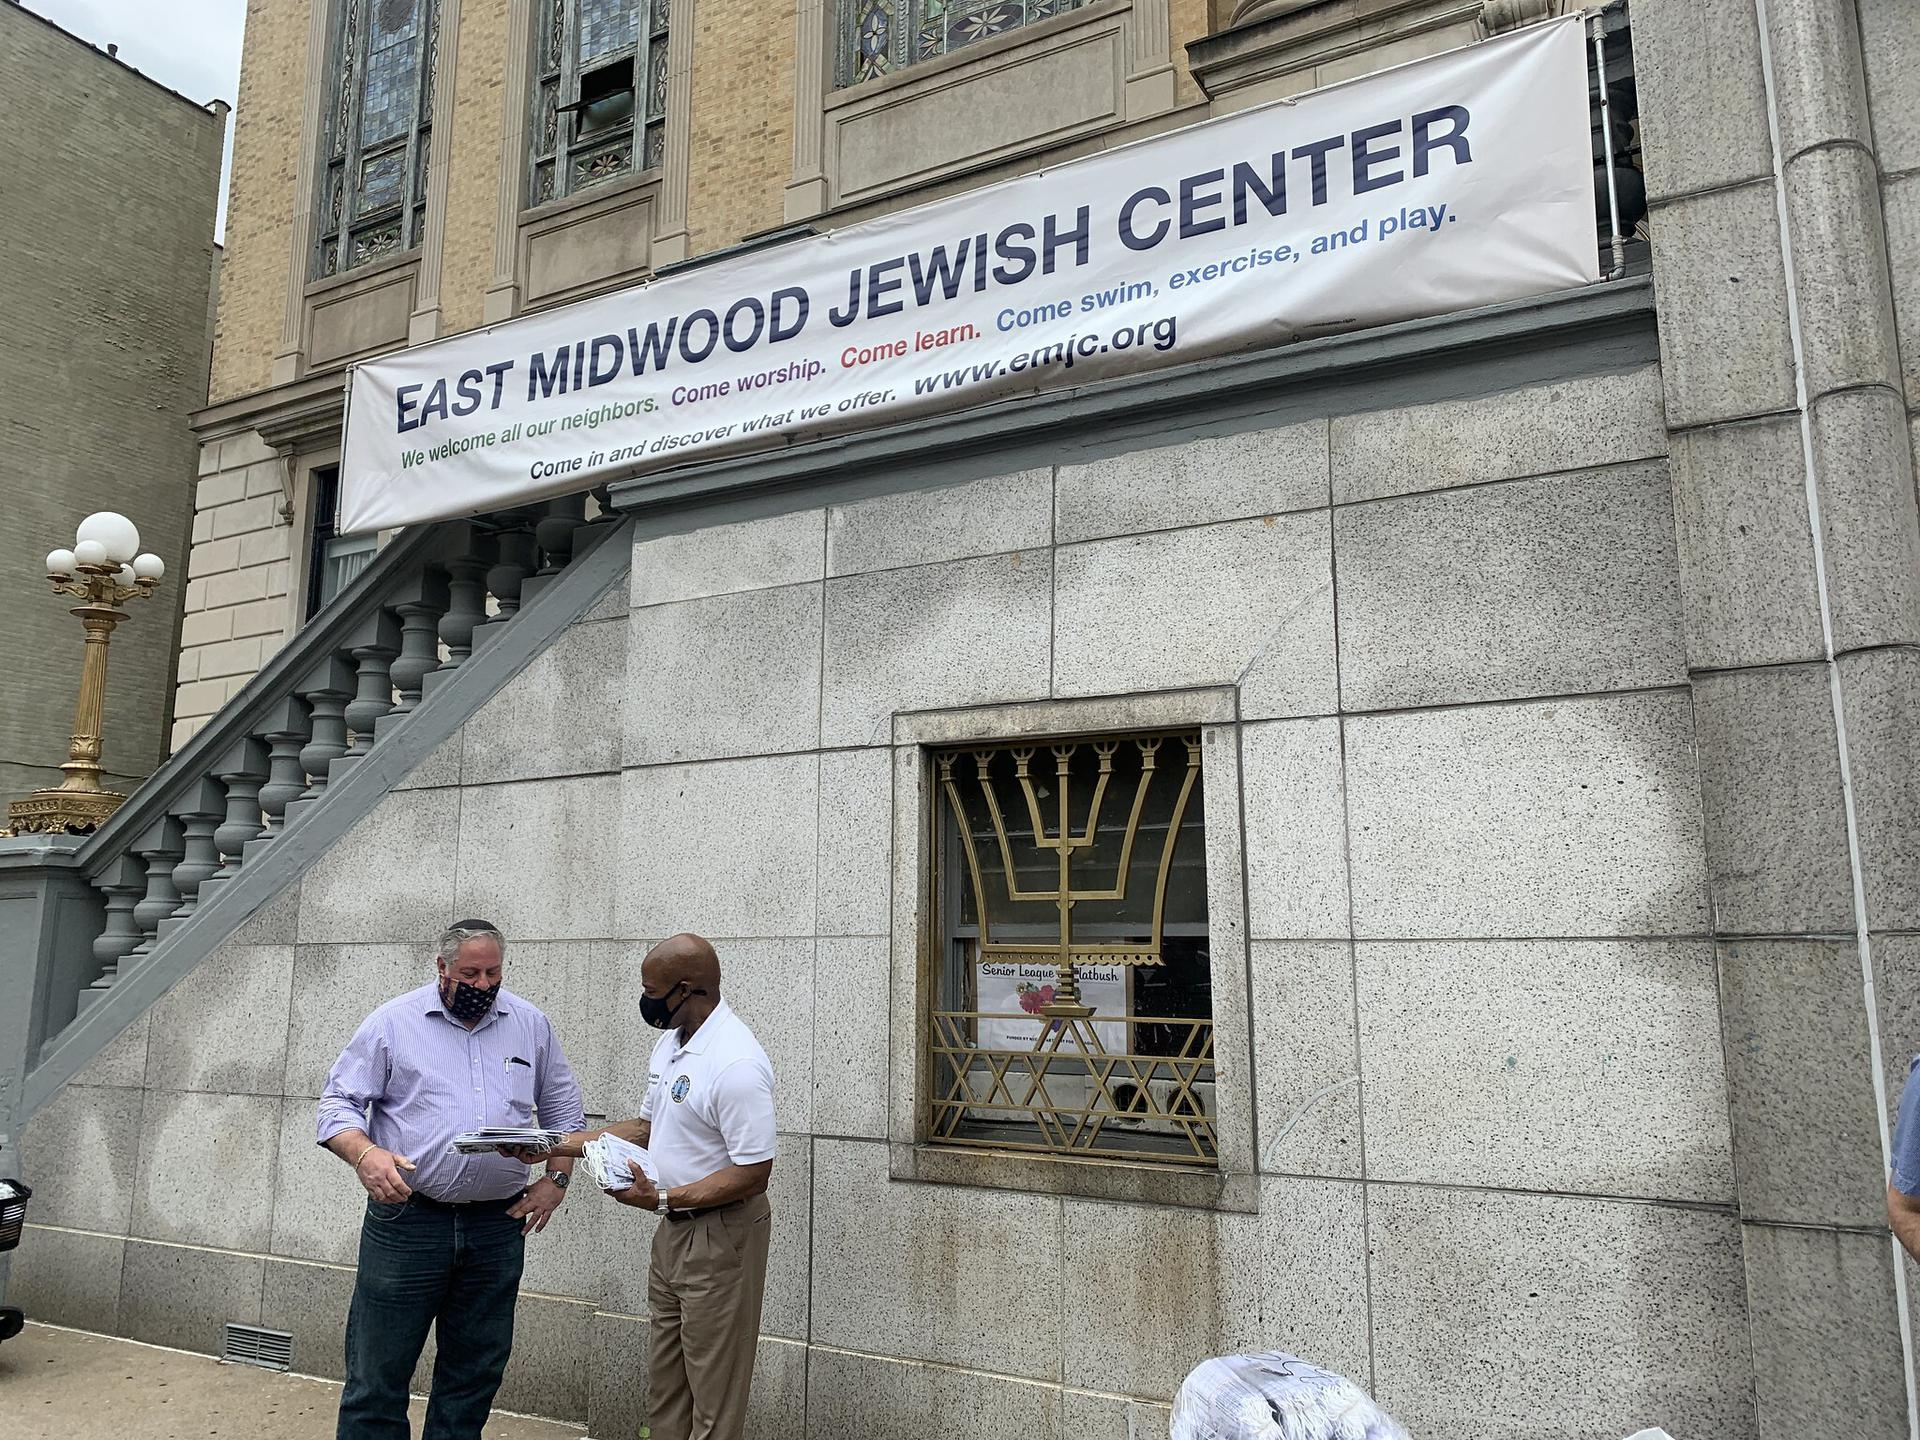 Brooklyn Borough President distributes masks outside the East Midwood Jewish Center, June 5, 2020. (Eric Adams Flickr)